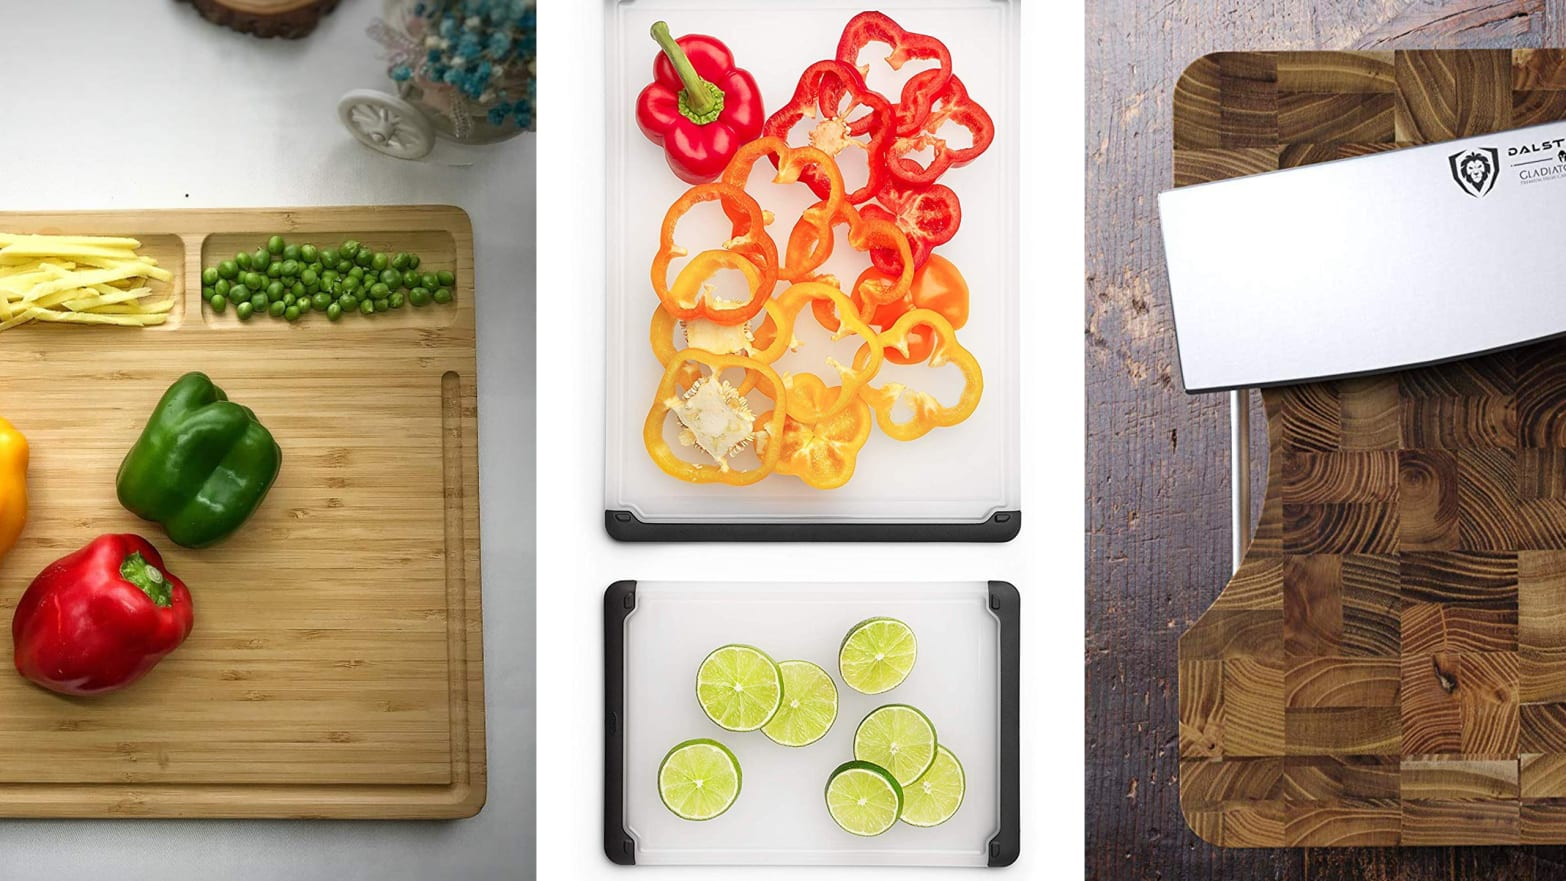 Cutting Boards Come In Plastic, Bamboo, And Wood